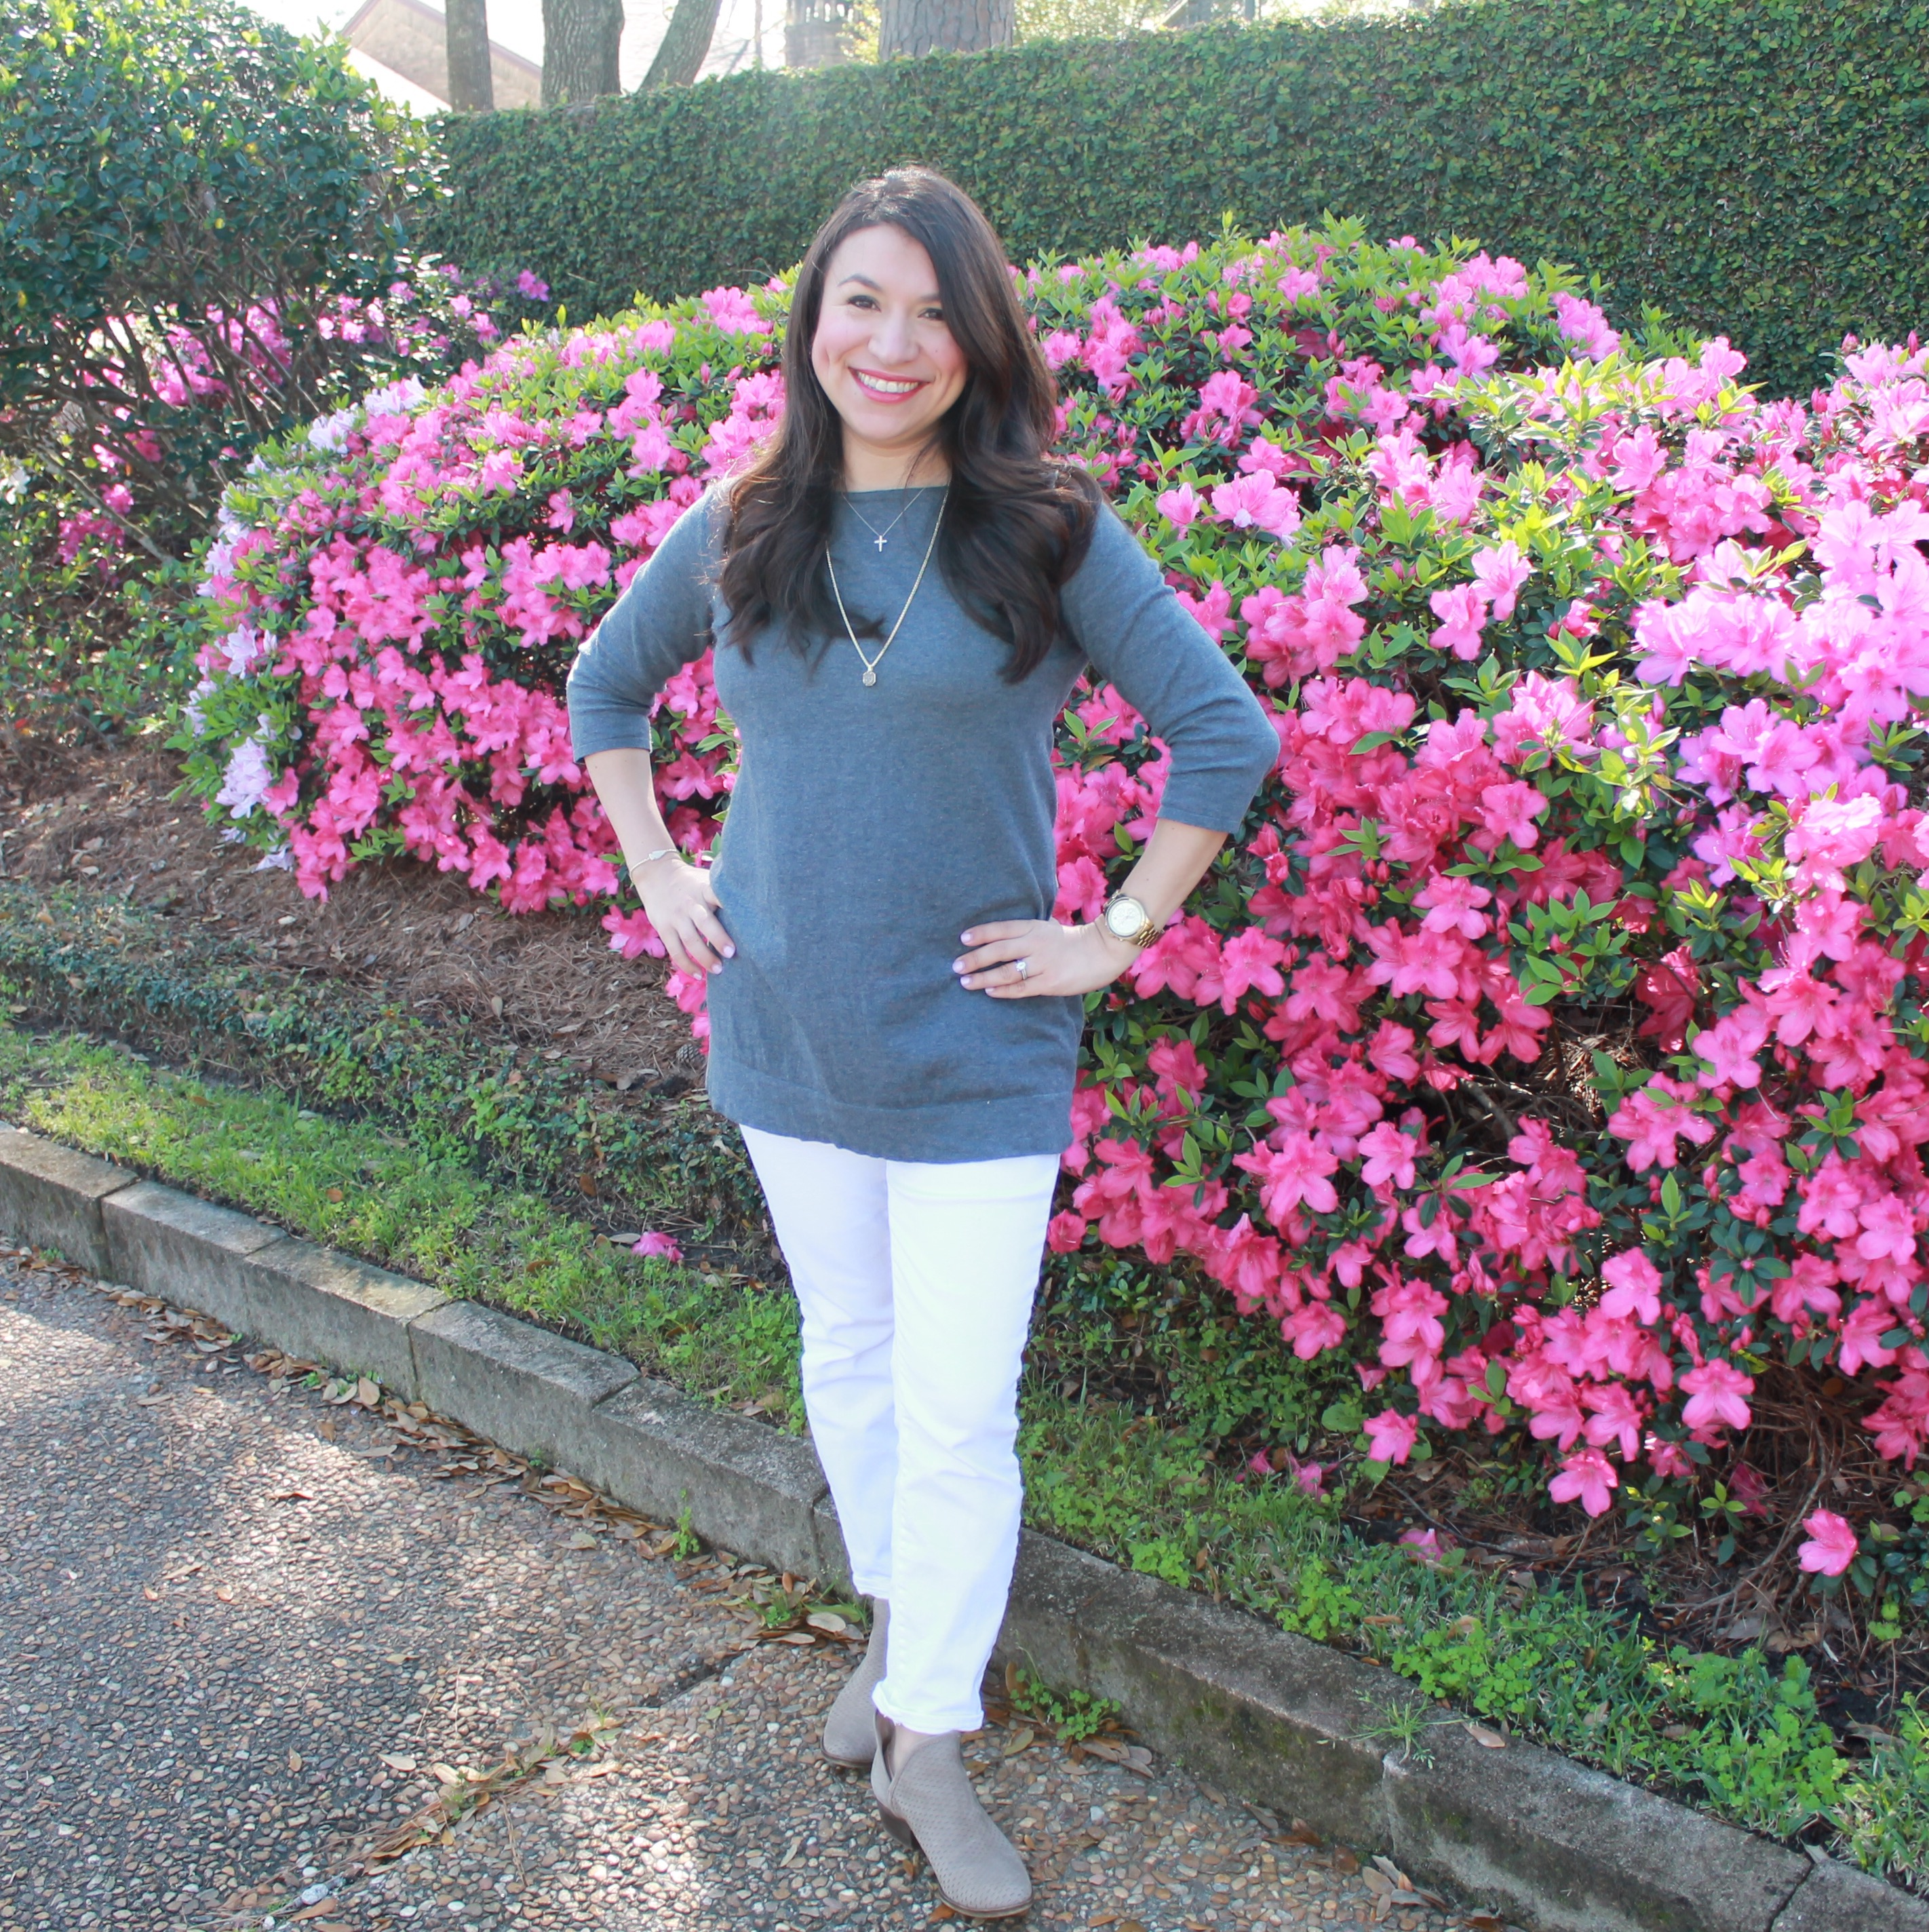 Spring Fashion: How to style a gray tunic with white jeans.